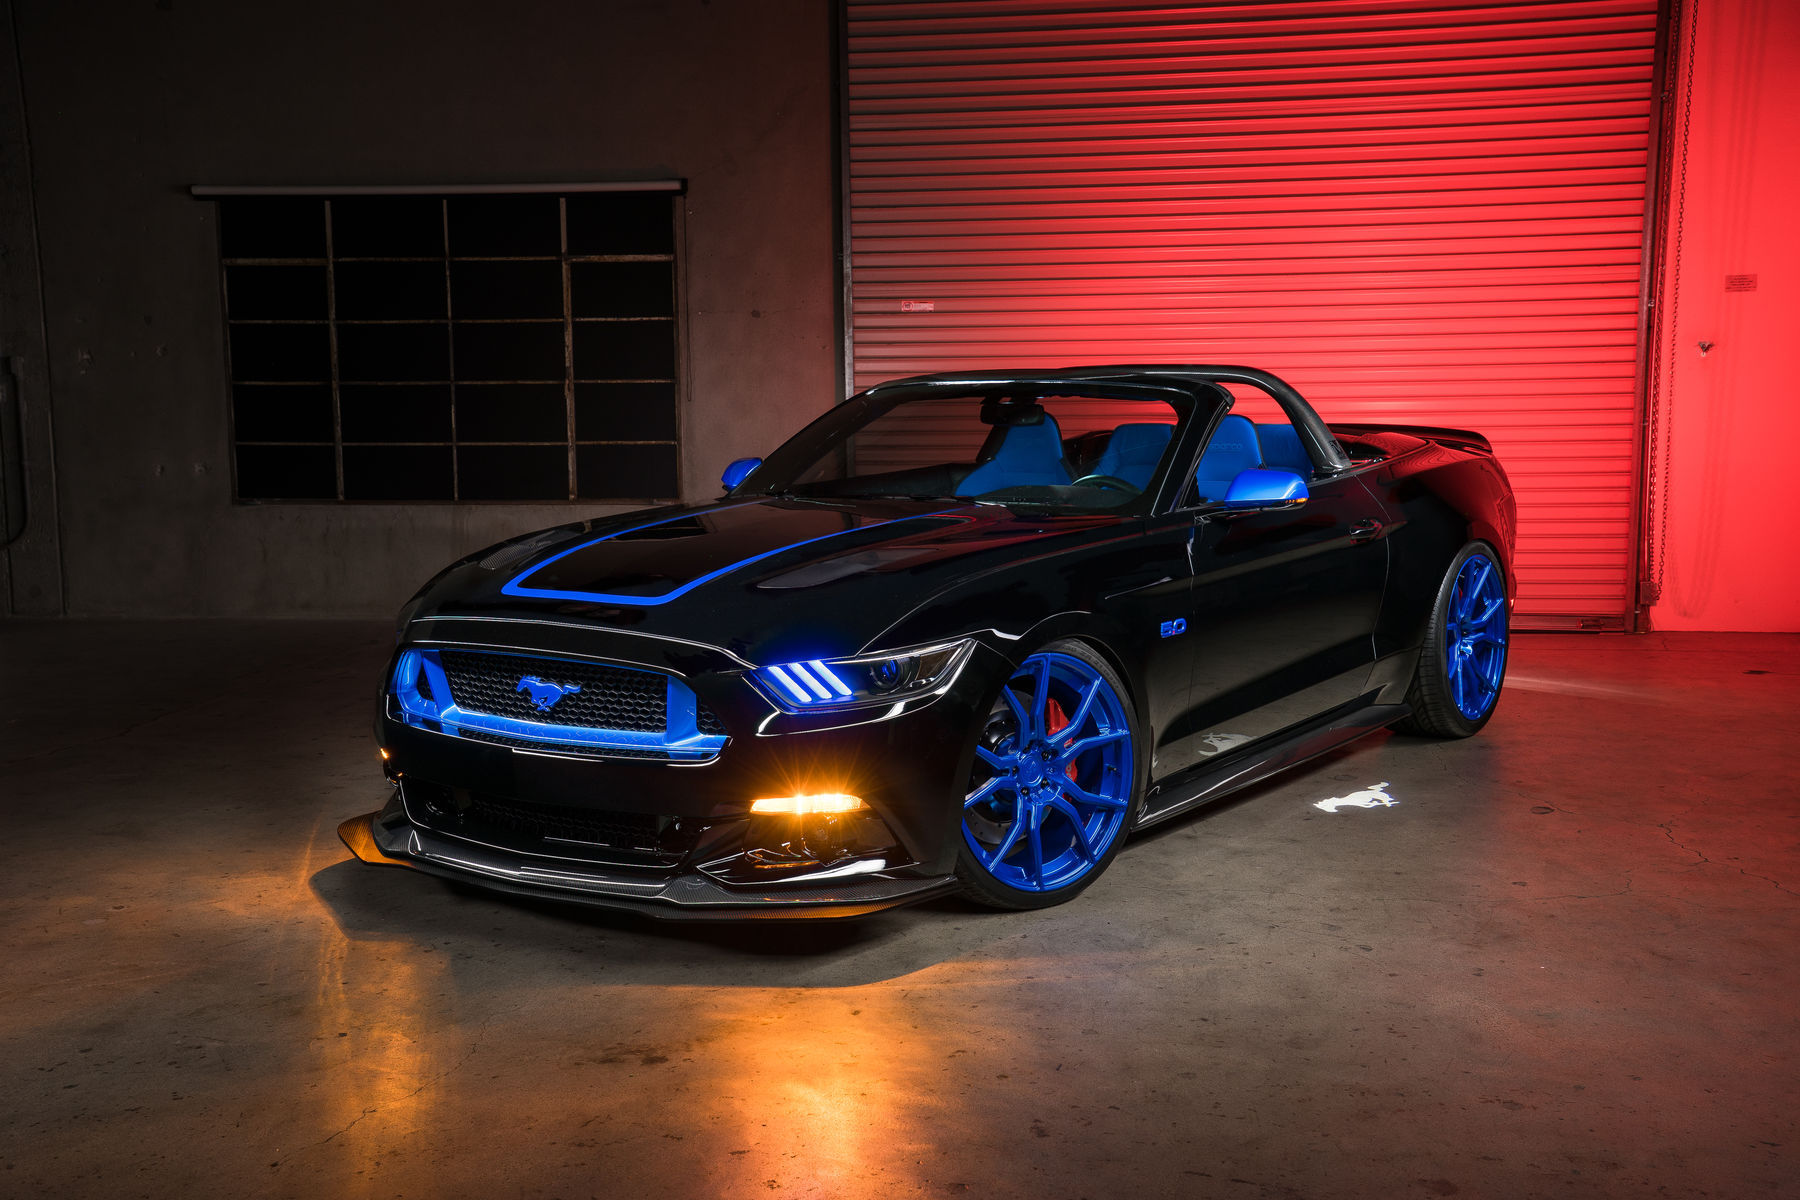 2015 Ford Mustang | 2015 Mustang GT Convertible